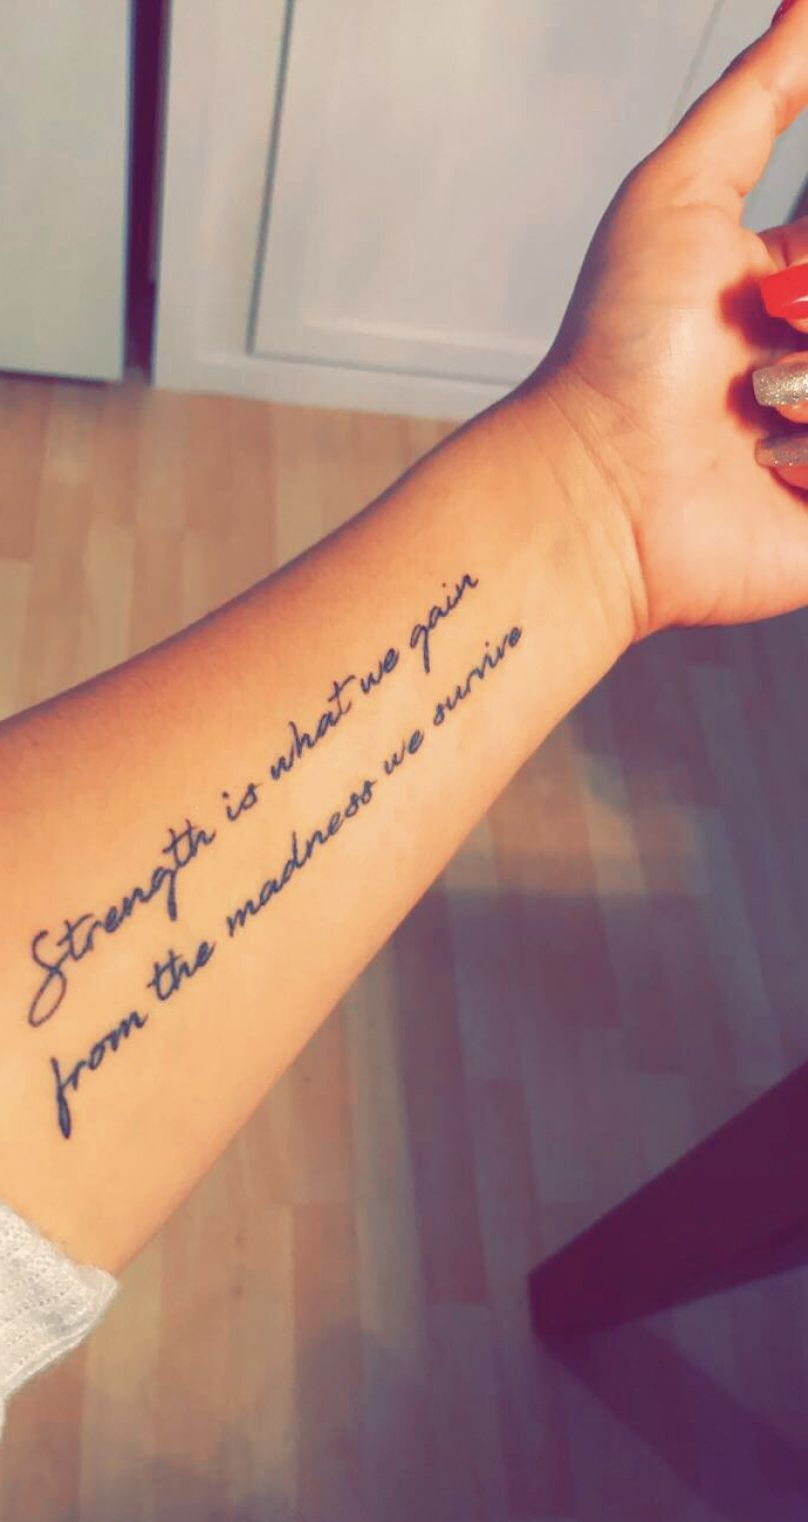 Fore Arm Tattoo Quotes : tattoo, quotes, Inspirational, Strength, Quotes, Tattoos, Forearm, Tattoos,, Tattoo,